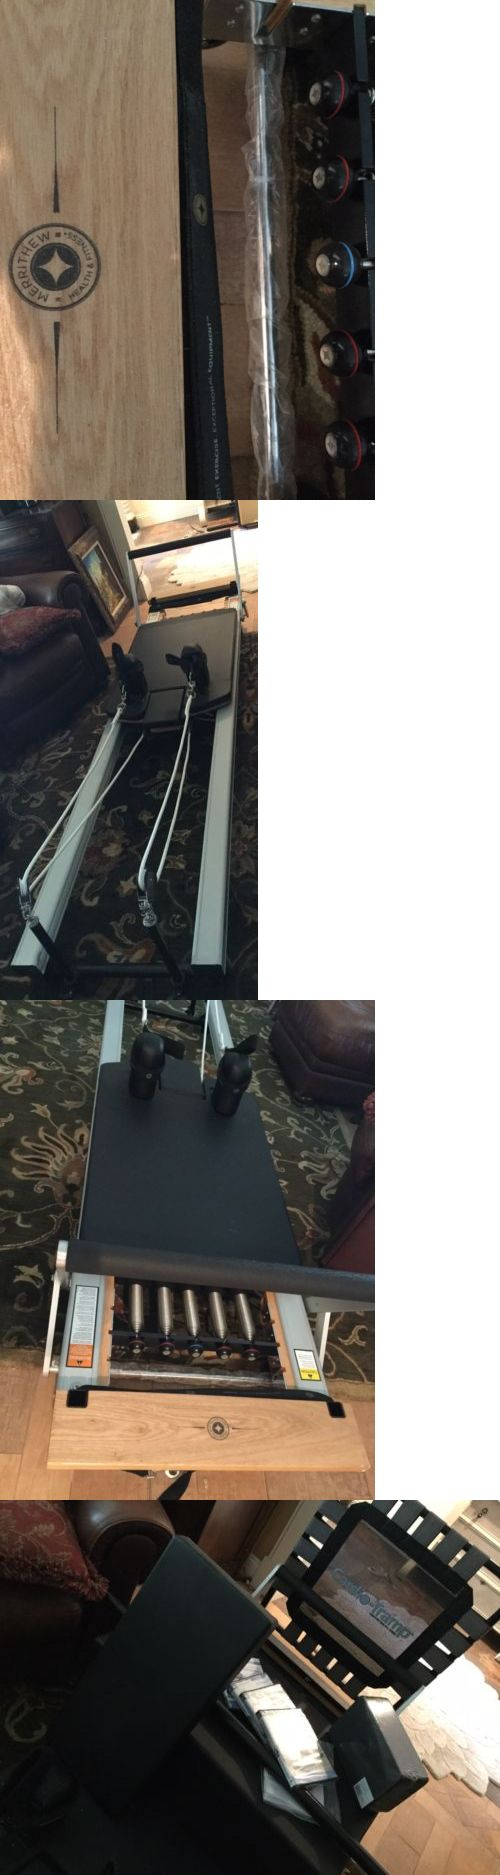 Pilates Tables 179807: Stott Pilates Spx Reformer With Cardio Tramp And Conditioning Package -> BUY IT NOW ONLY: $1700 on eBay!